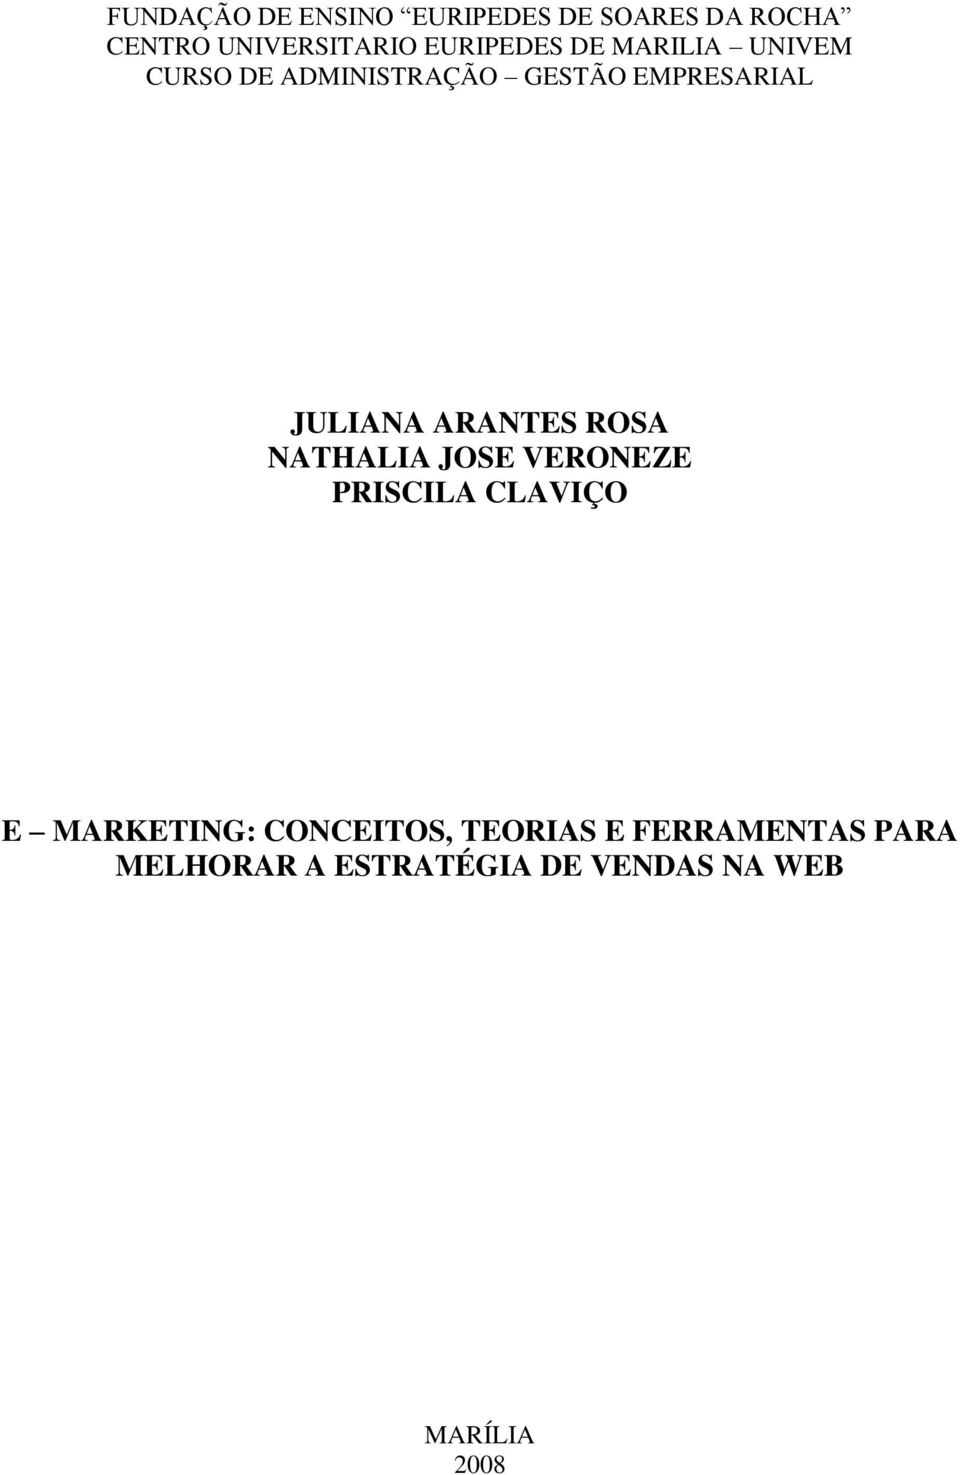 JULIANA ARANTES ROSA NATHALIA JOSE VERONEZE PRISCILA CLAVIÇO E MARKETING: